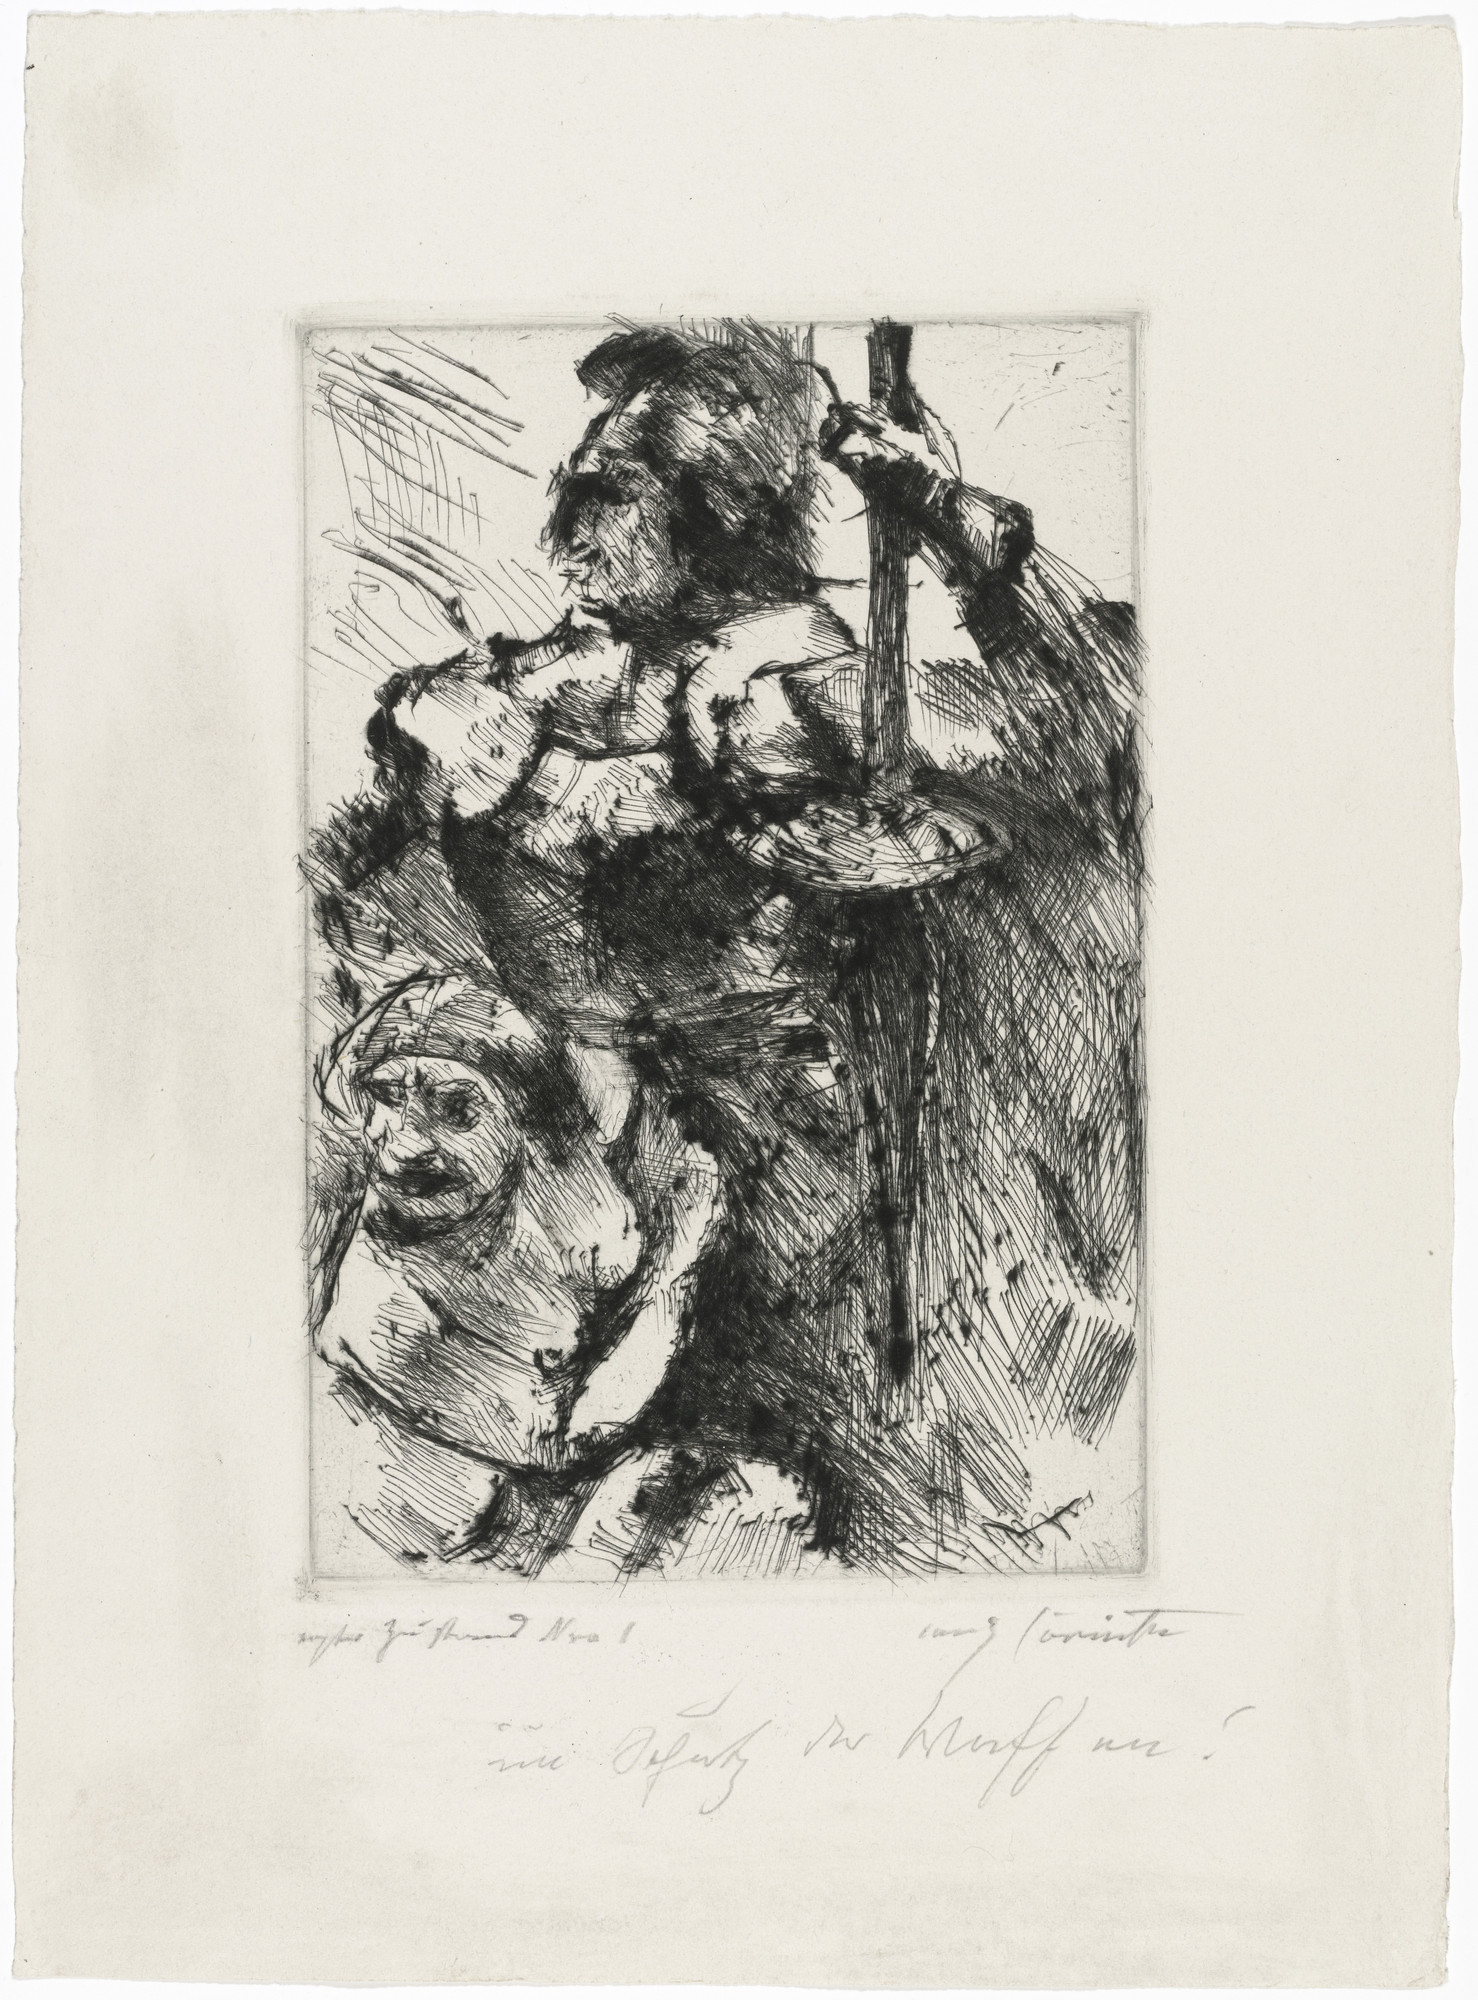 Lovis Corinth. Protected by Weapons (Im Schutz der Waffen) for the portfolio Compositions (Kompositionen). (1921-22)